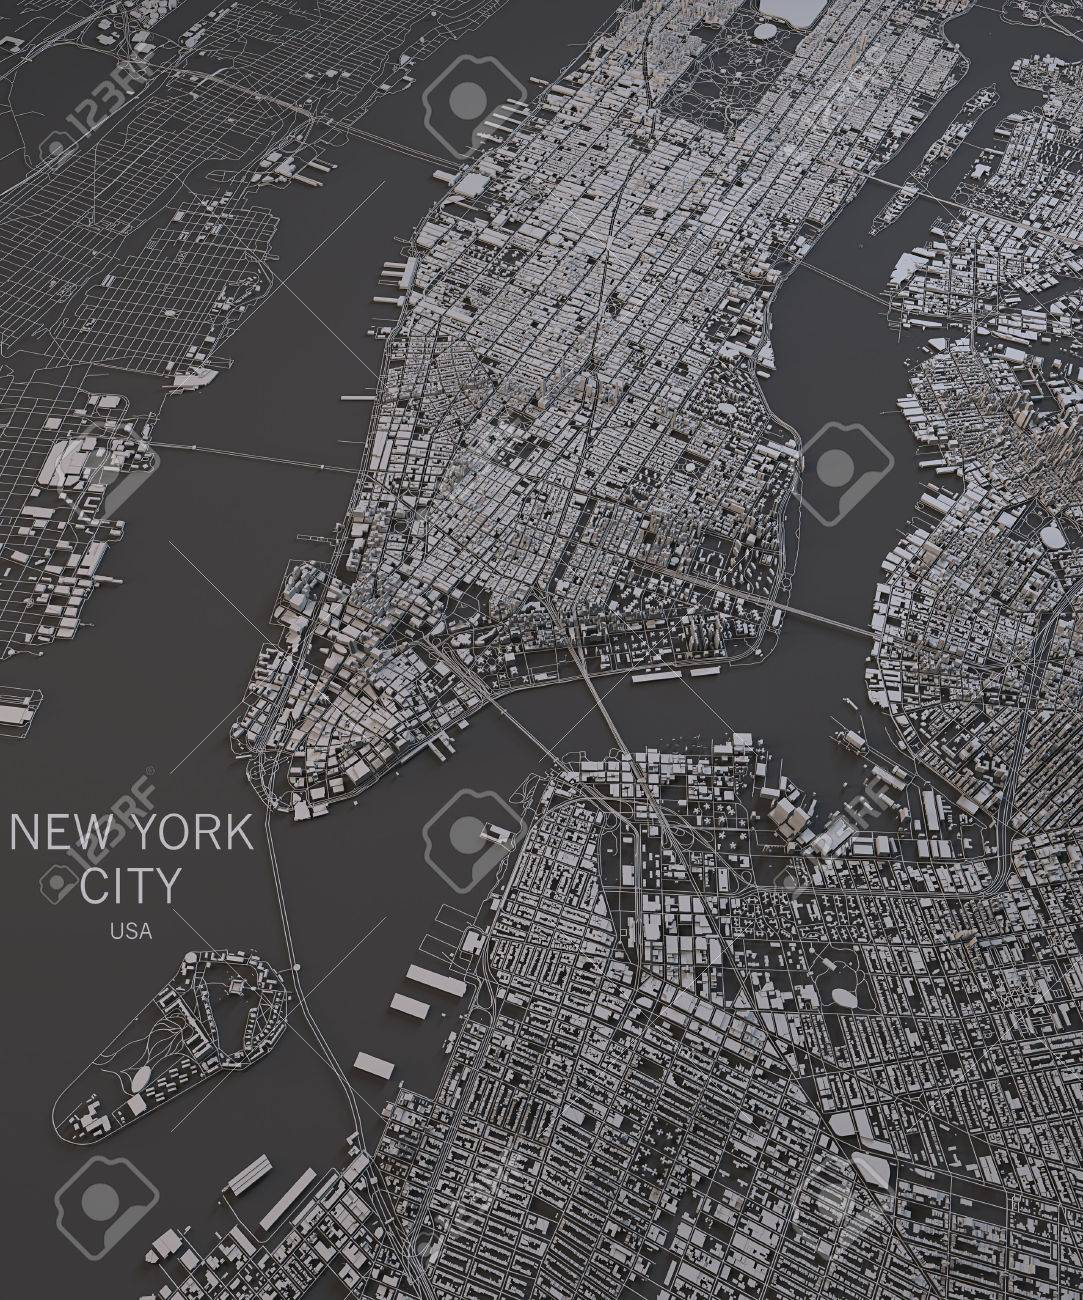 New York City Map Stock Photos Images Royalty Free New York City - Chicago map satellite